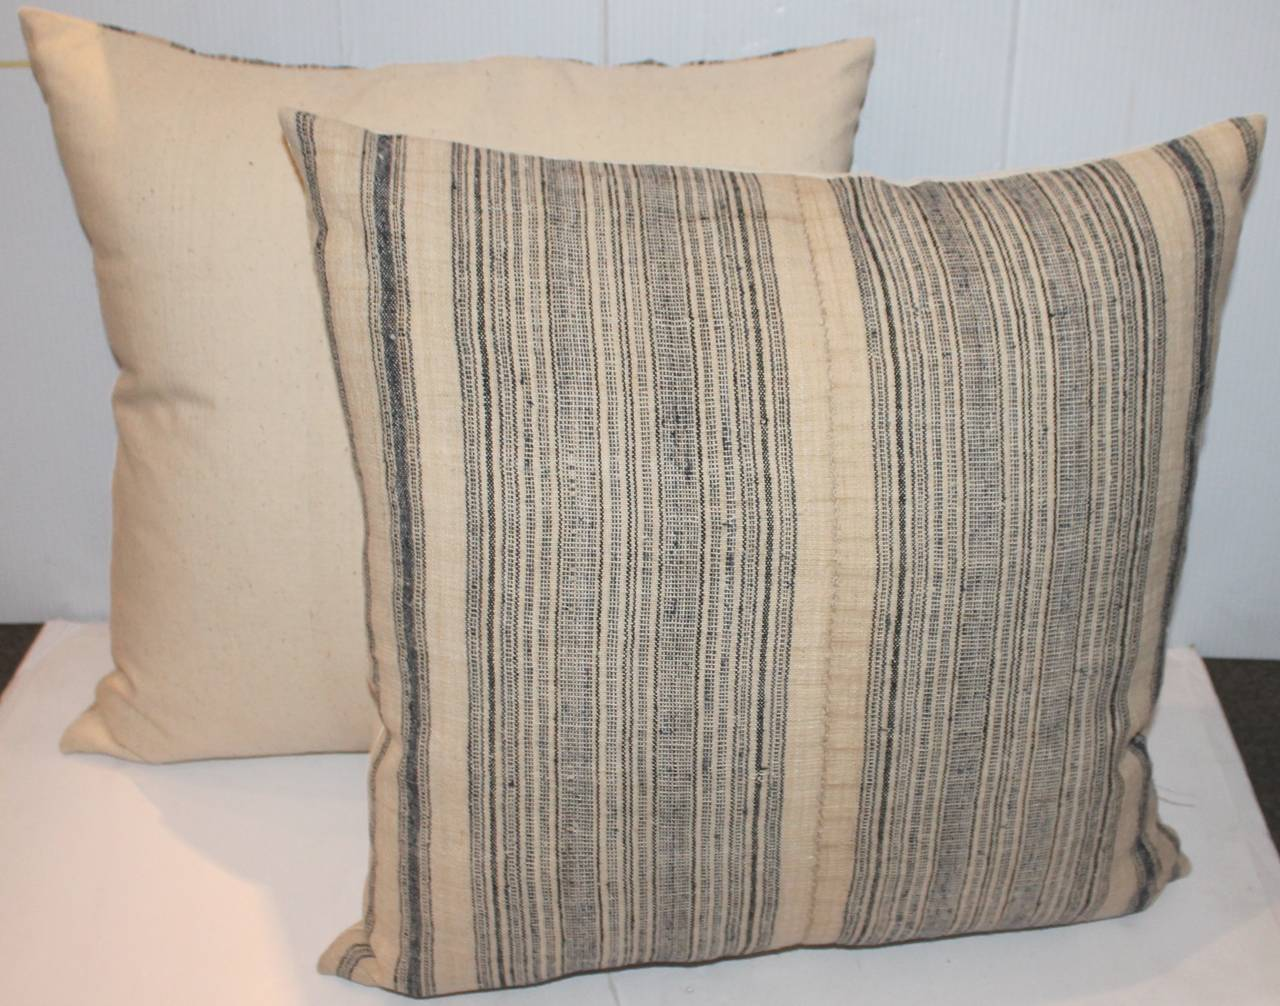 Hand-Crafted 19th Century Pair of Blue and Cream Linen Ticking Pillows For Sale